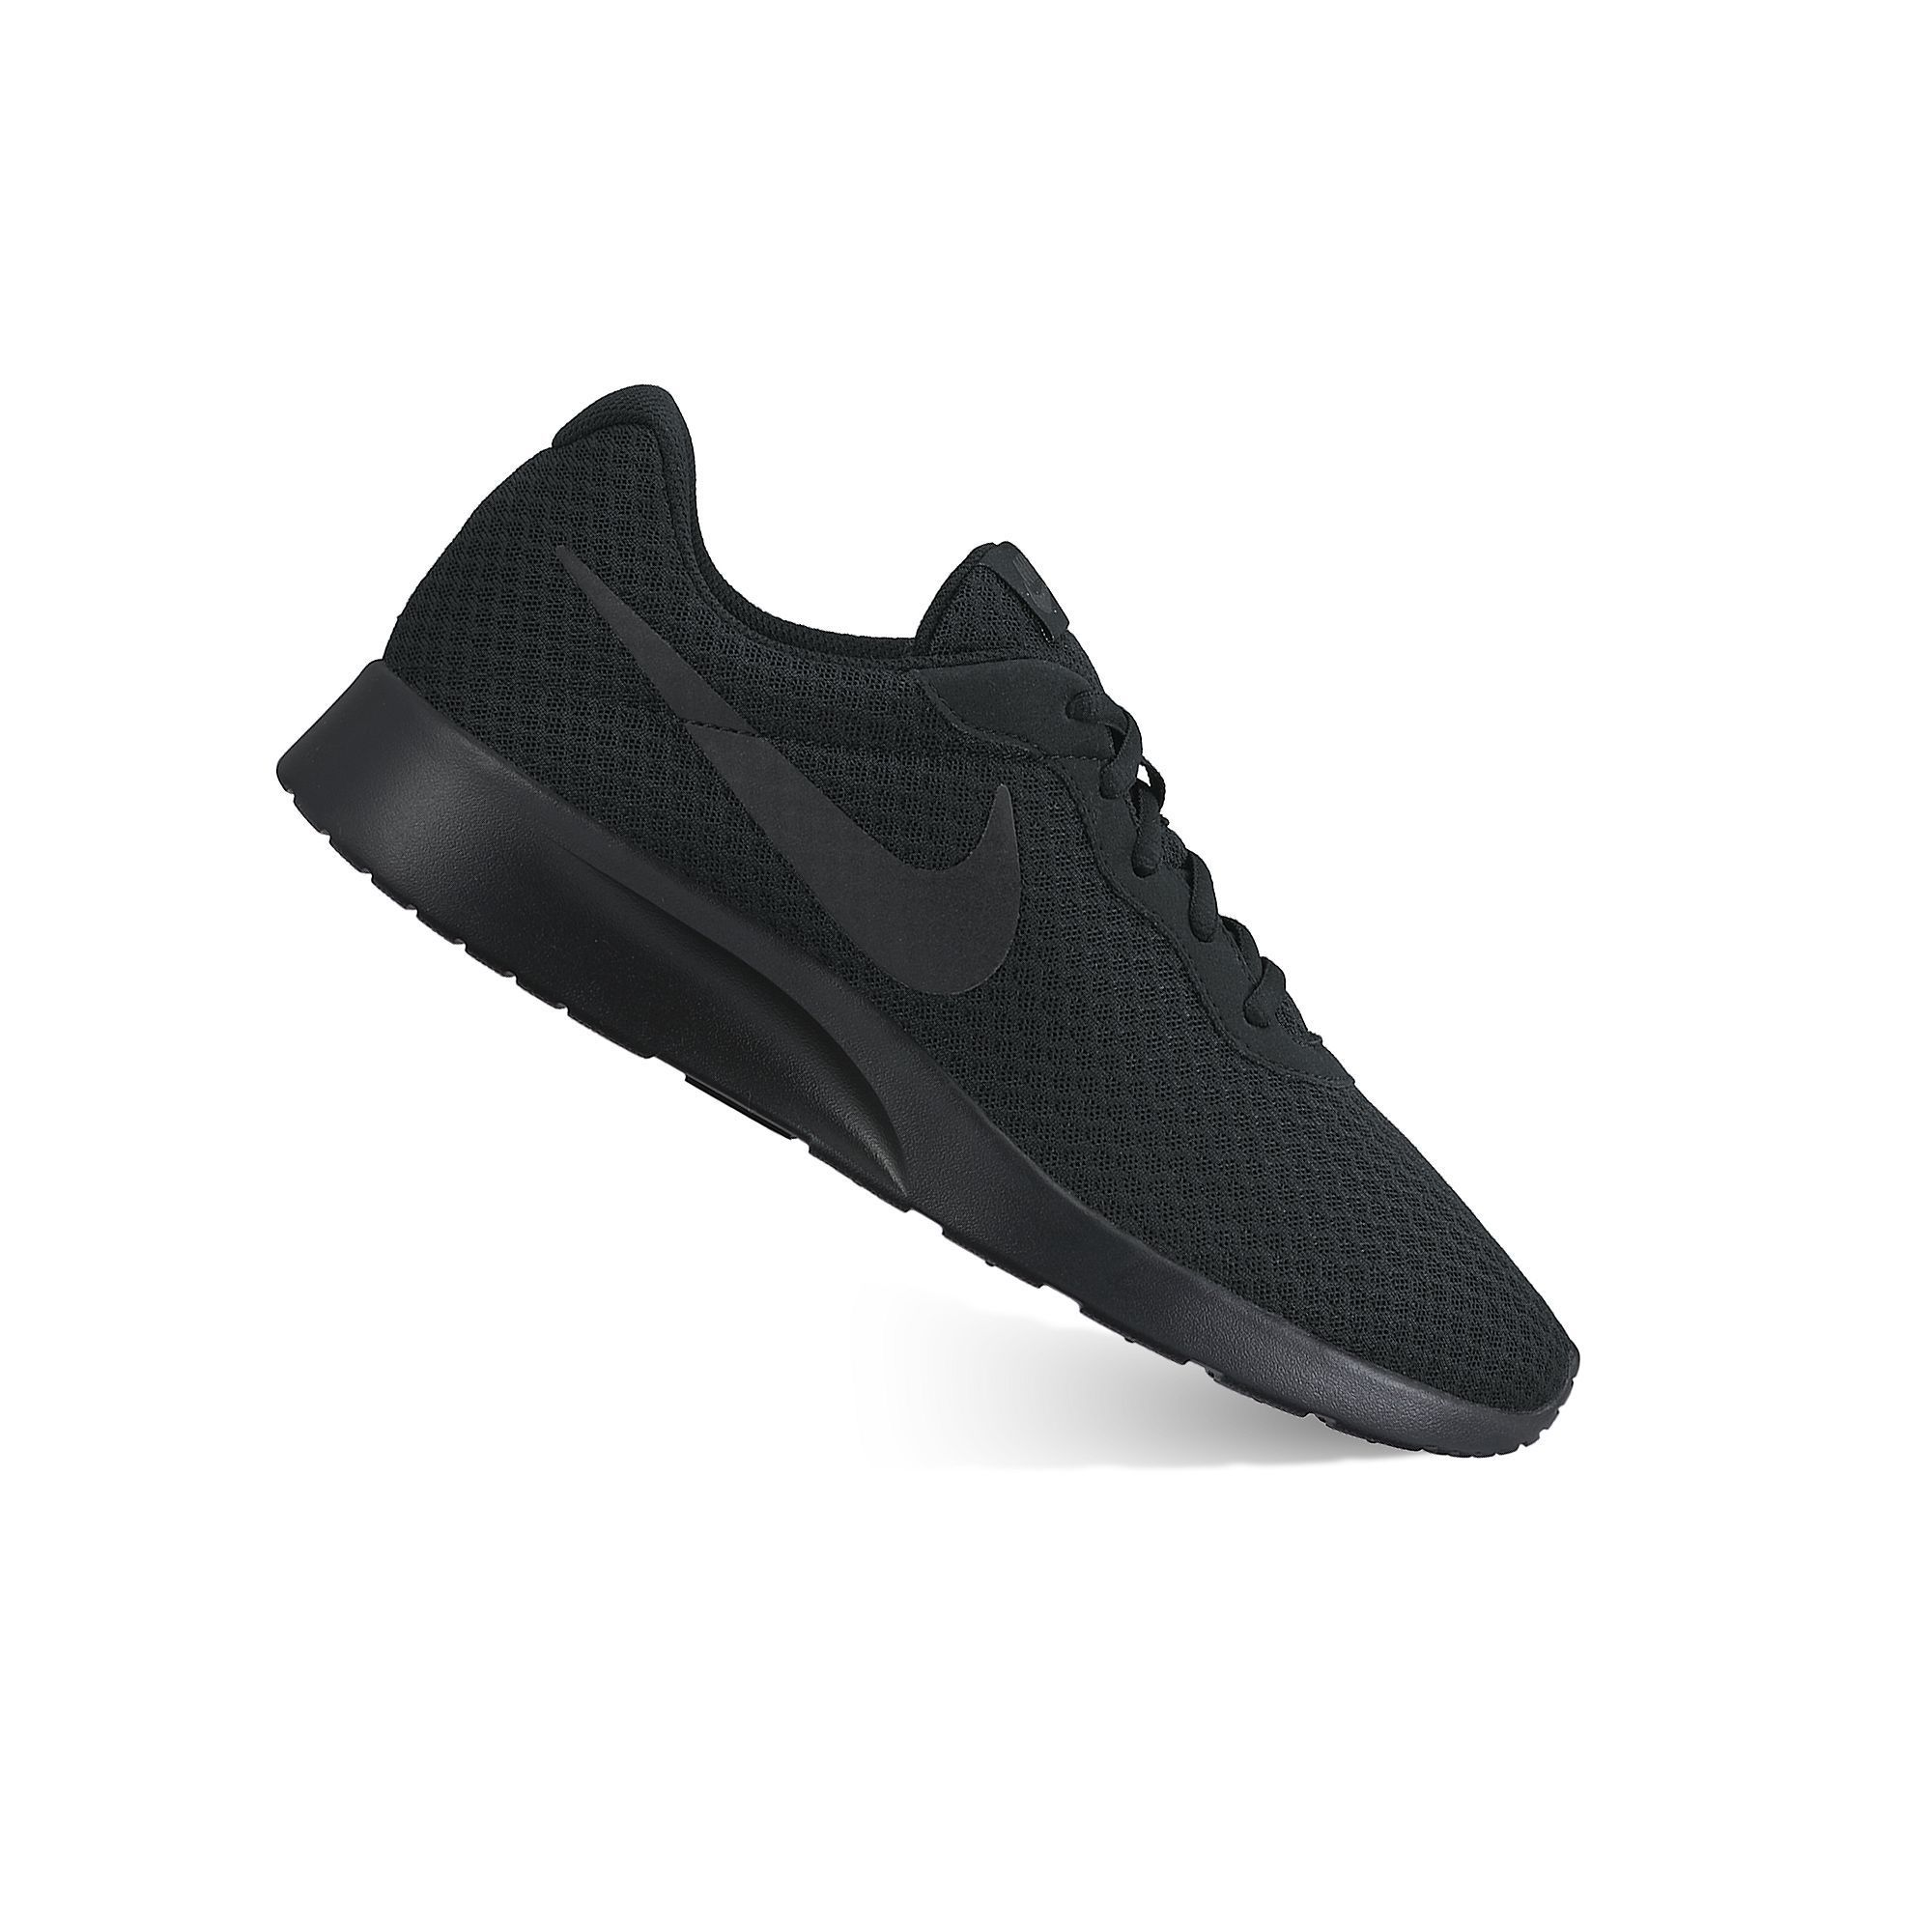 promo code b319b 164d0 Nike Tanjun Men s Athletic Shoes, Size  10.5, Black